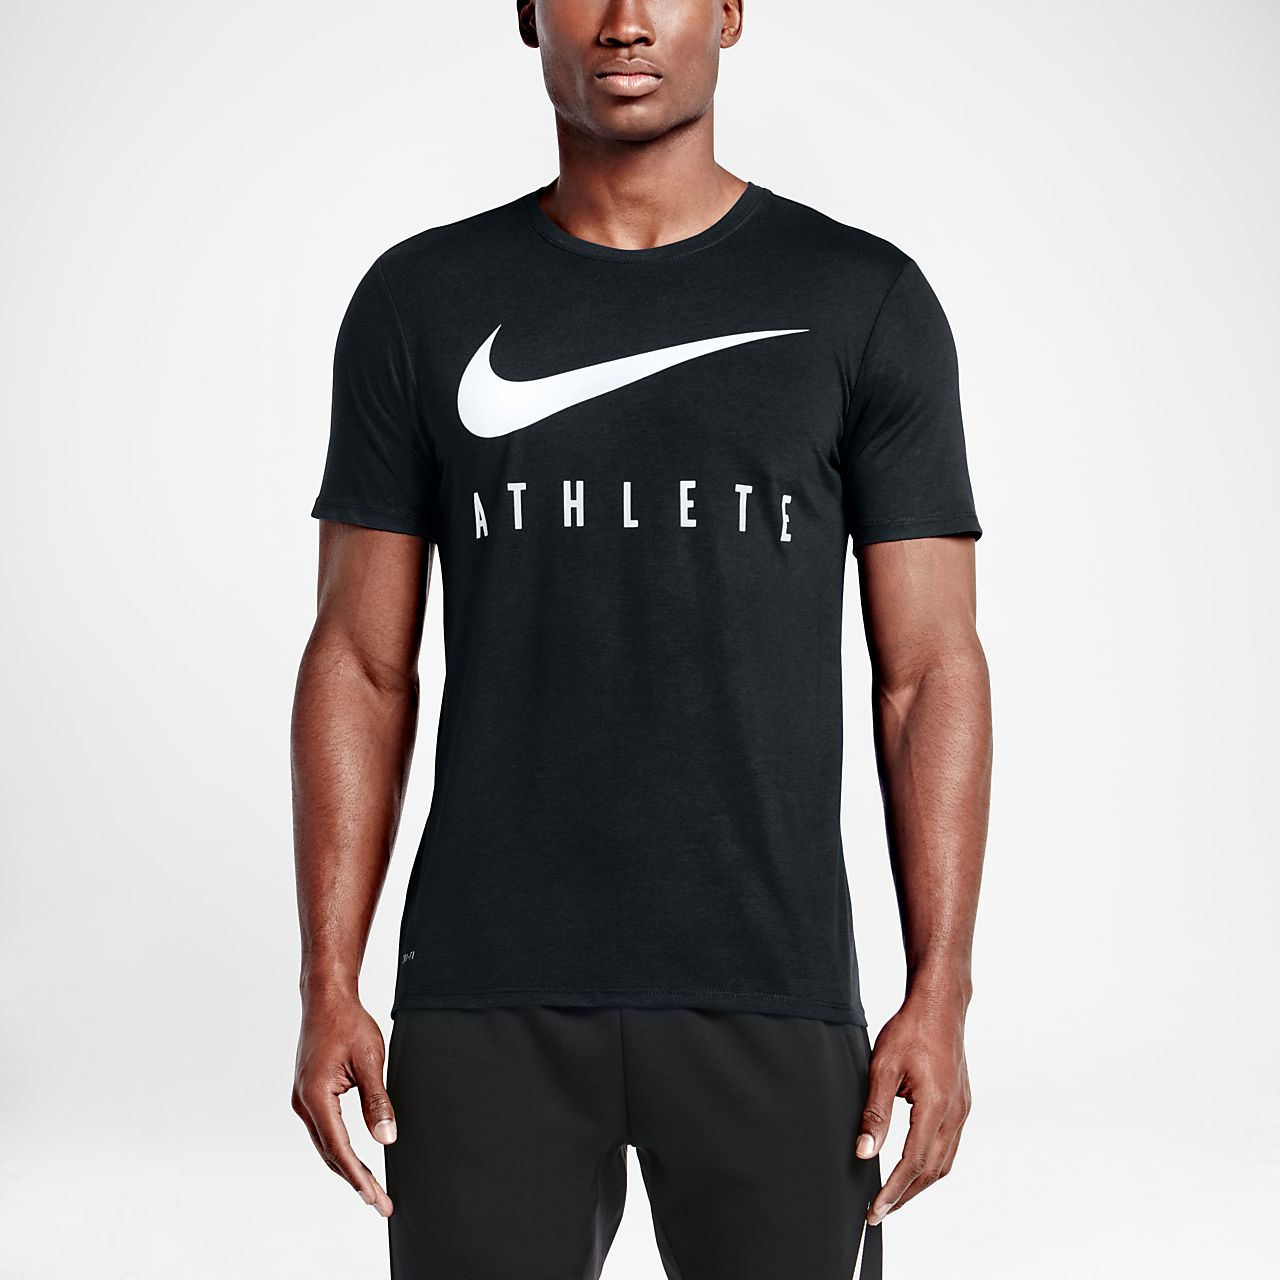 Nike Swoosh Athlete Men's T-Shirt